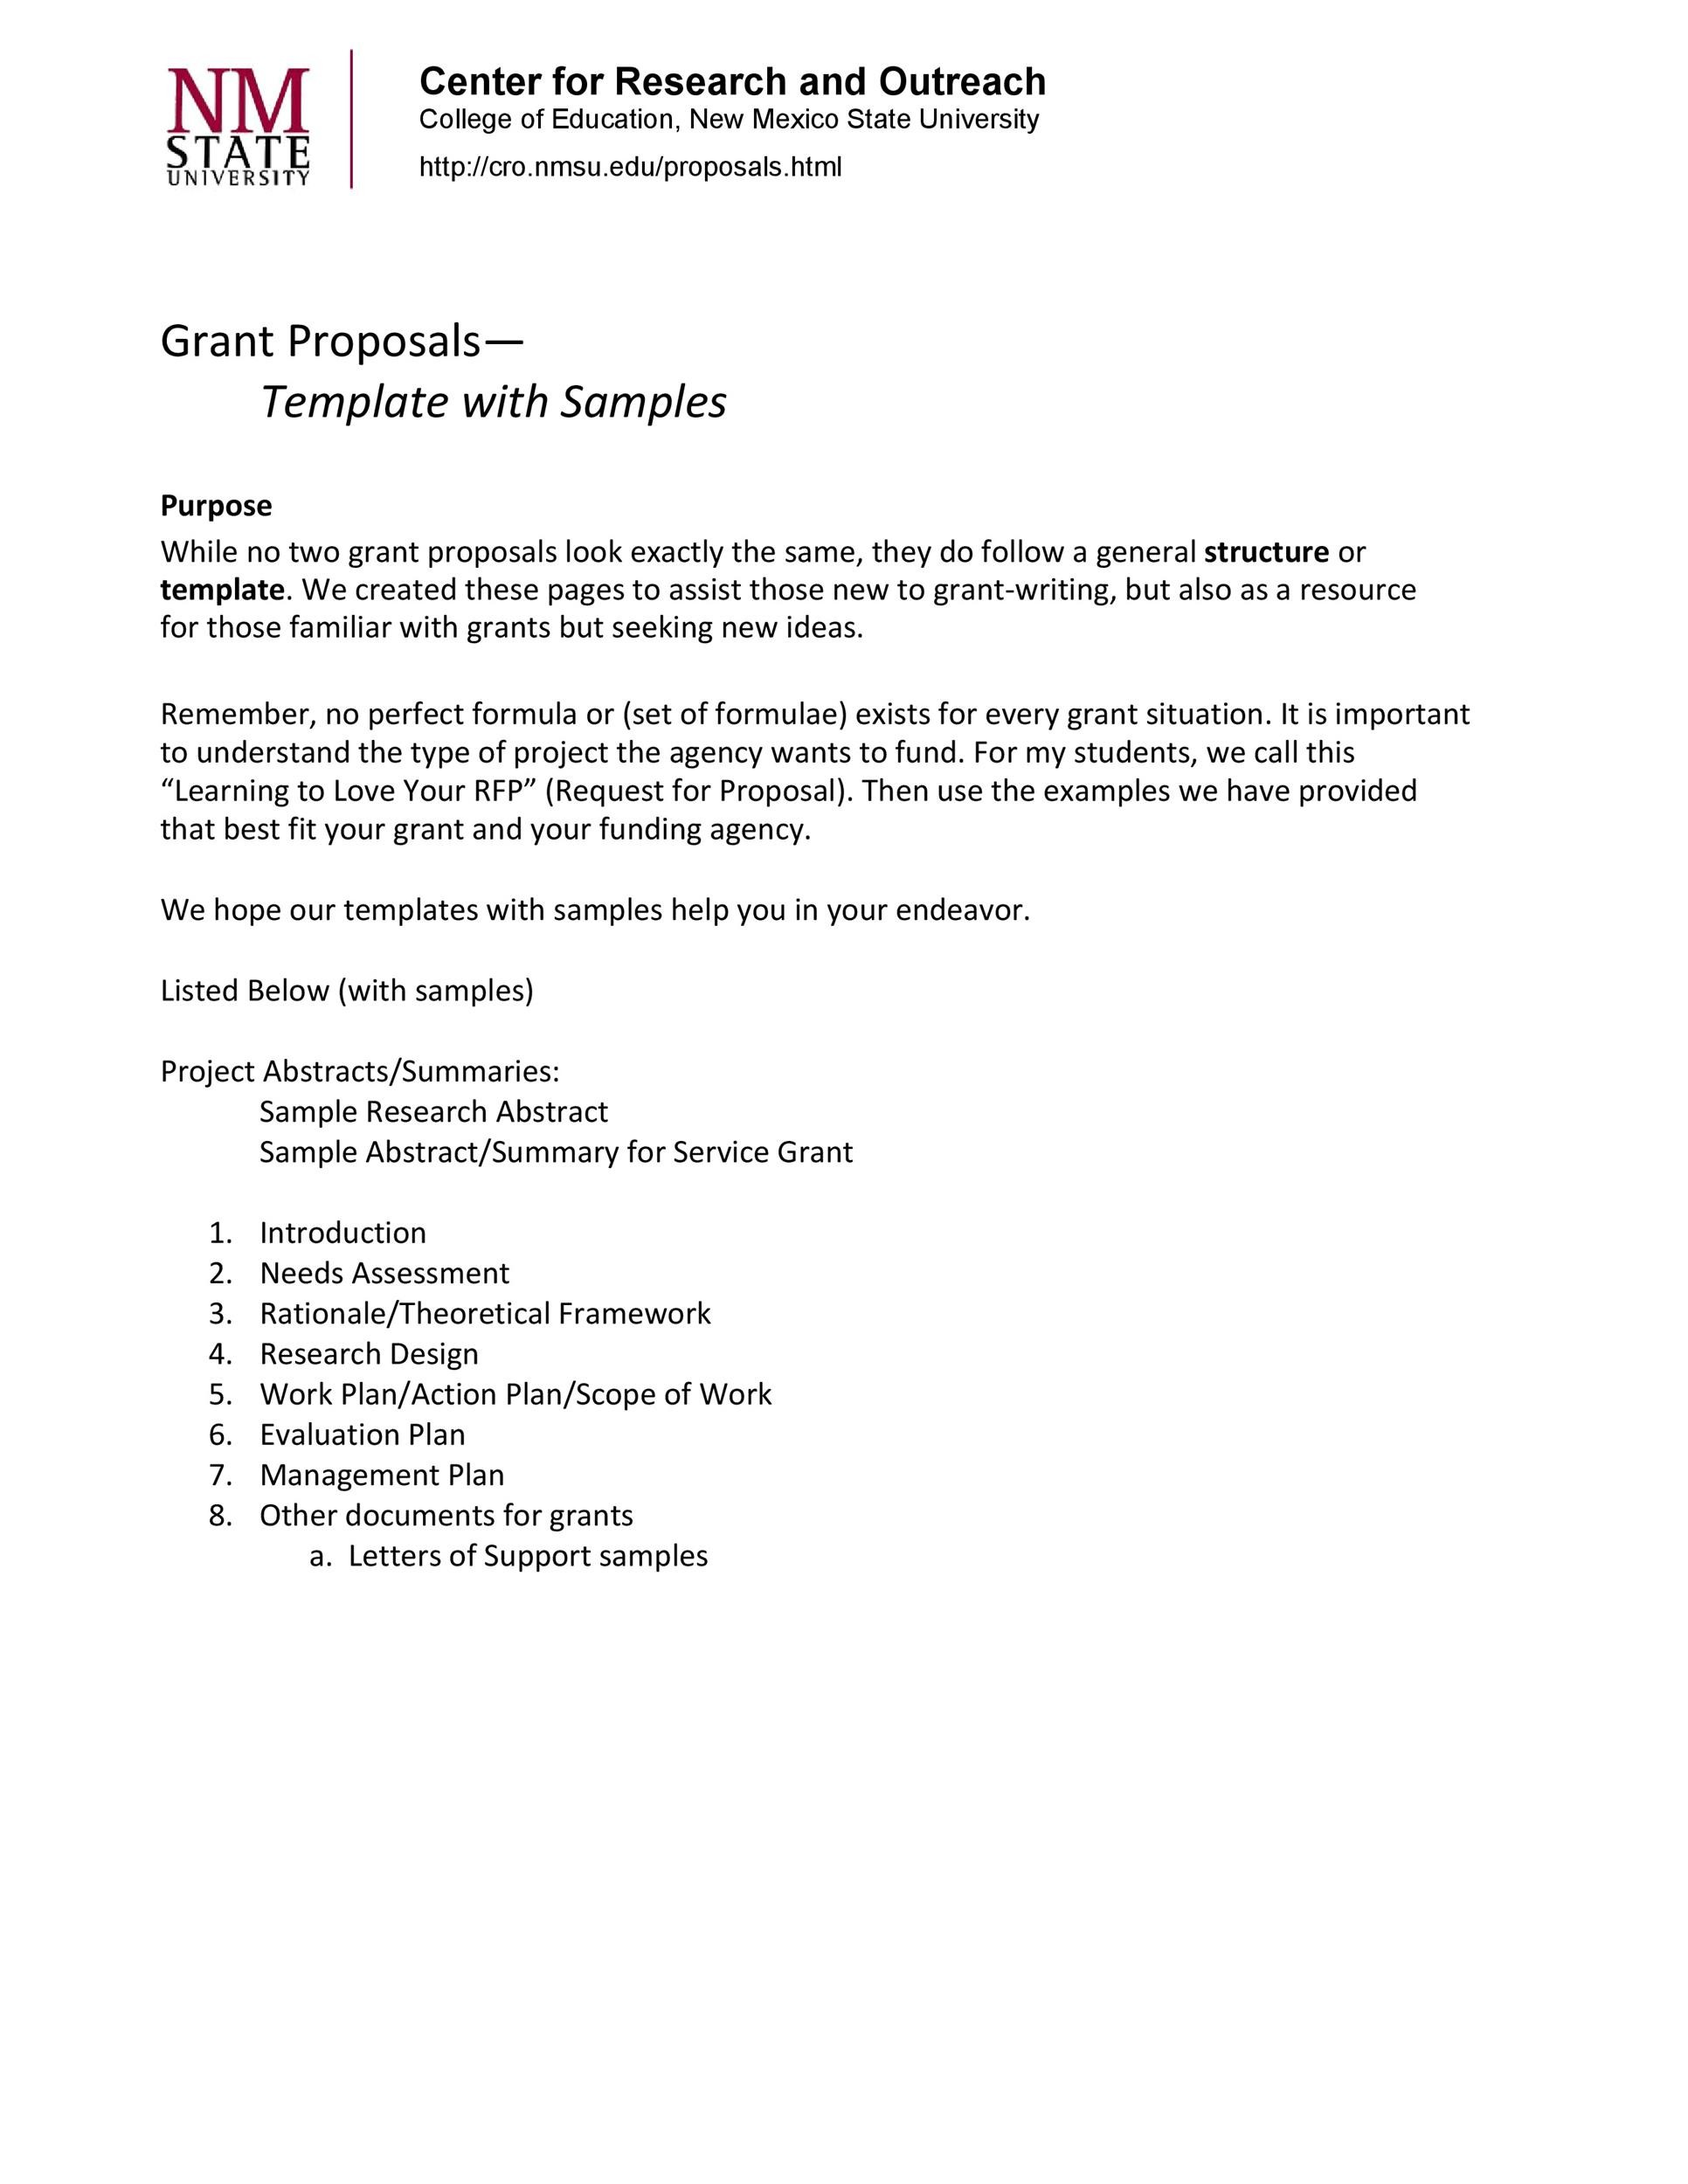 Grant Proposal Templates Nsf NonProfit Research  Template Lab